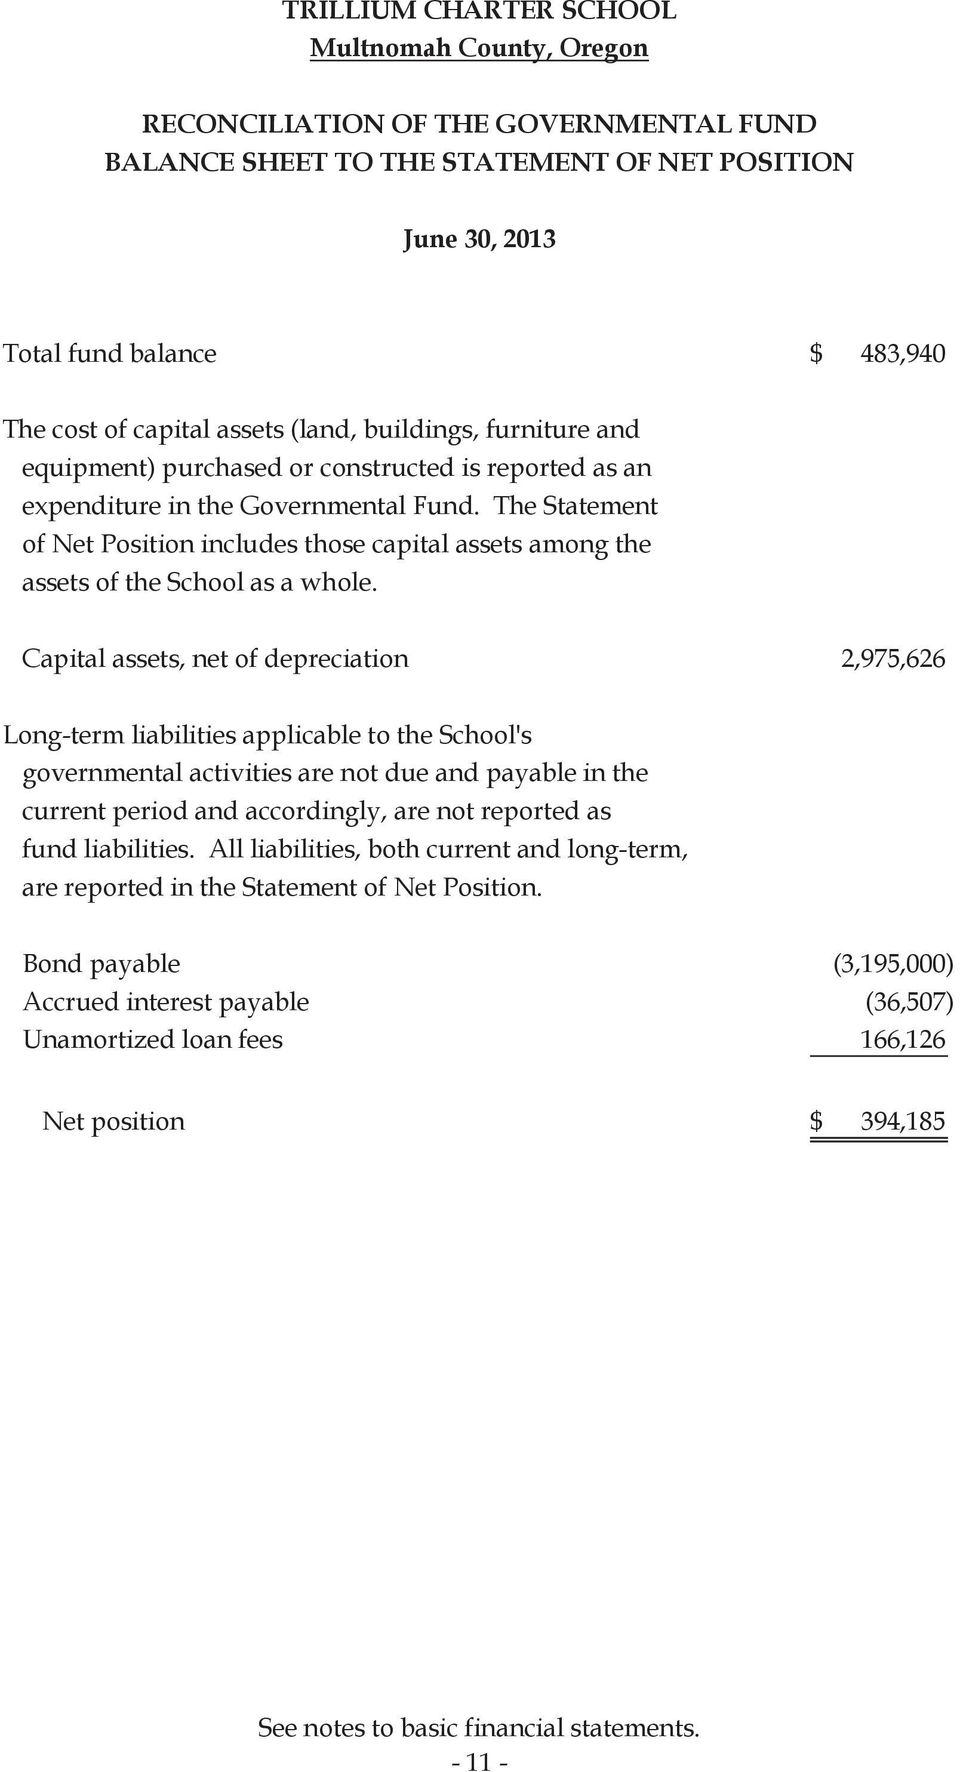 The Statement of Net Position includes those capital assets among the assets of the School as a whole.